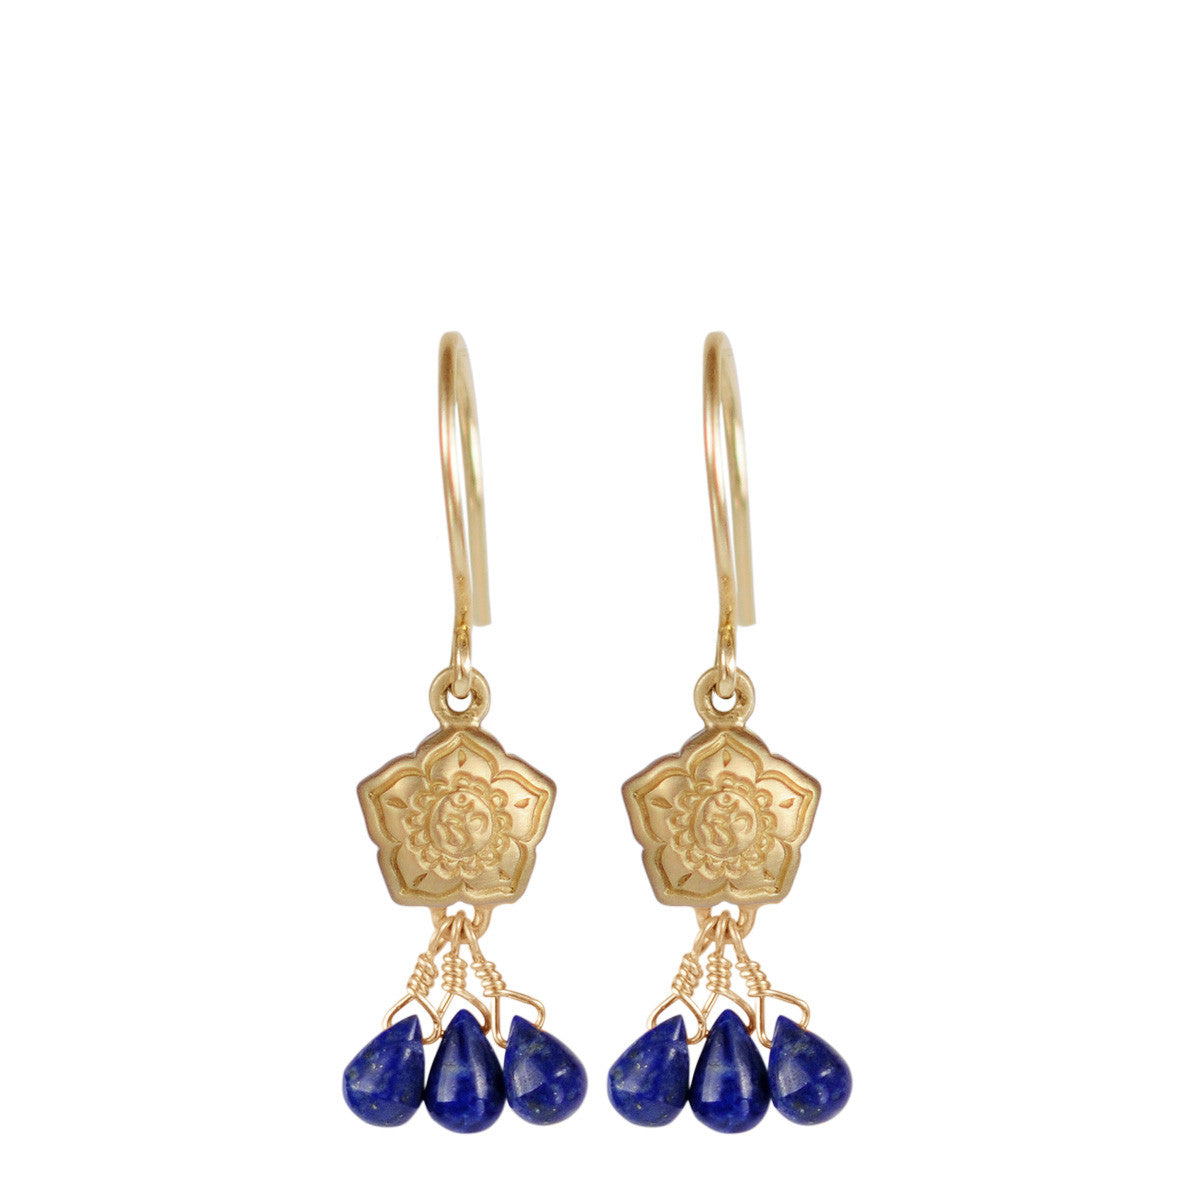 10K Gold Small Om Flower Earrings with Lapis